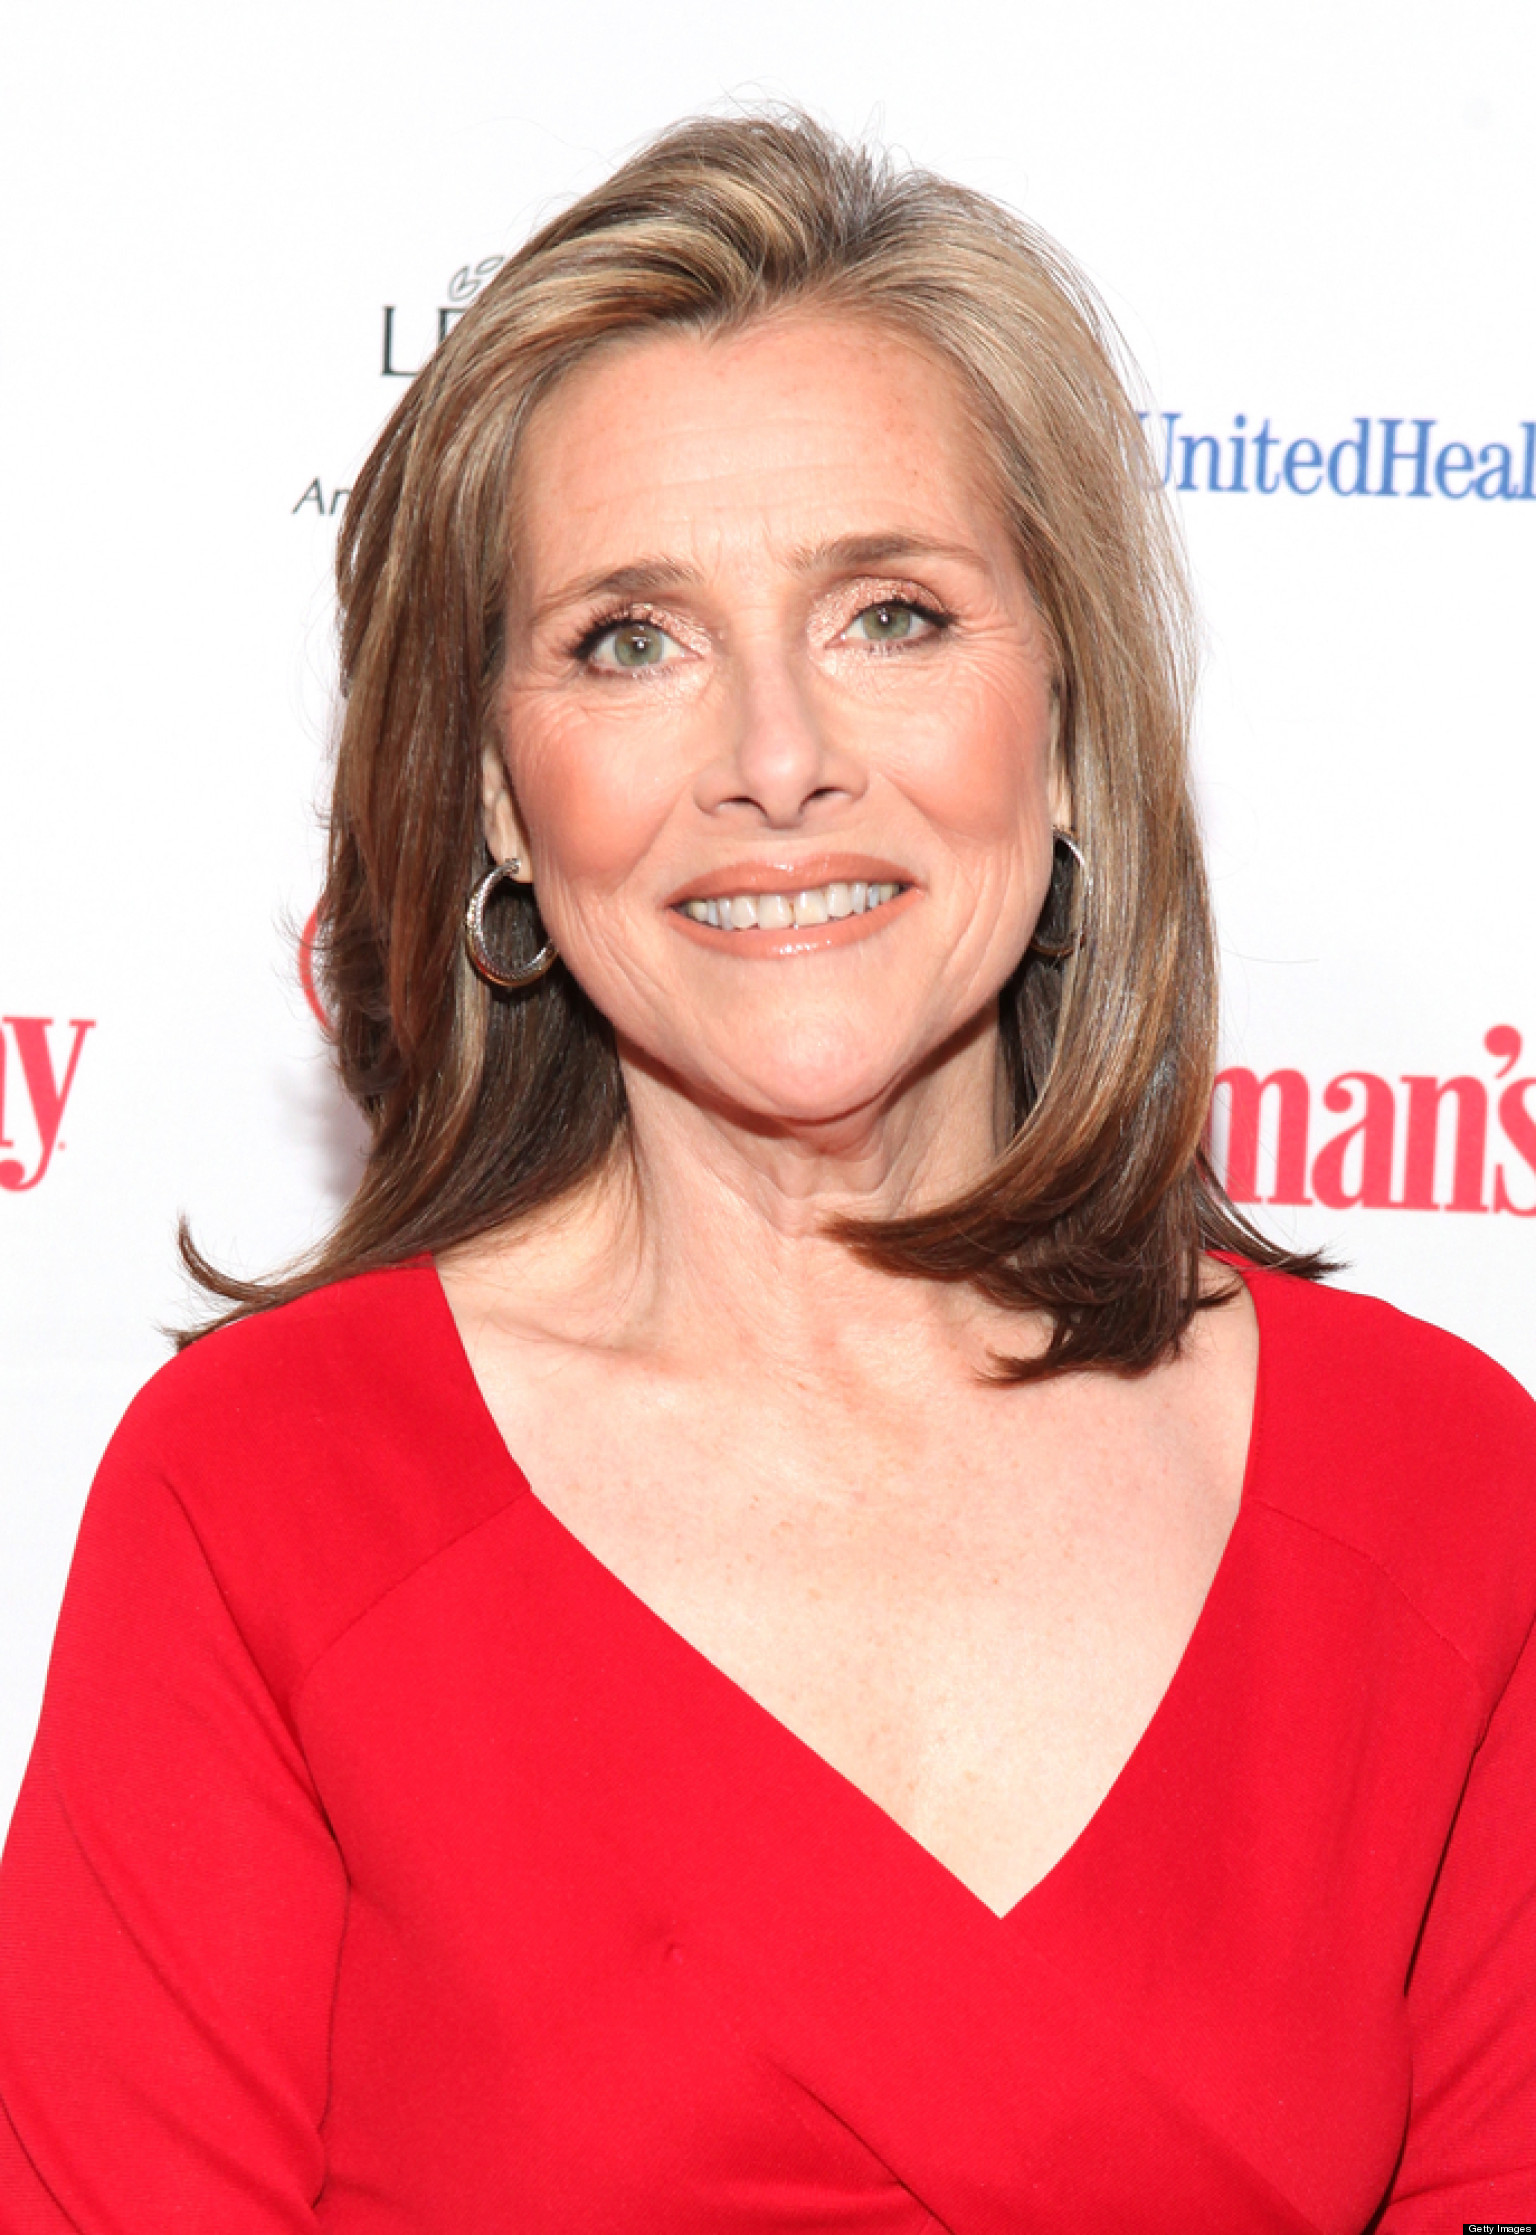 Meredith Vieira earned a  million dollar salary, leaving the net worth at 40 million in 2017